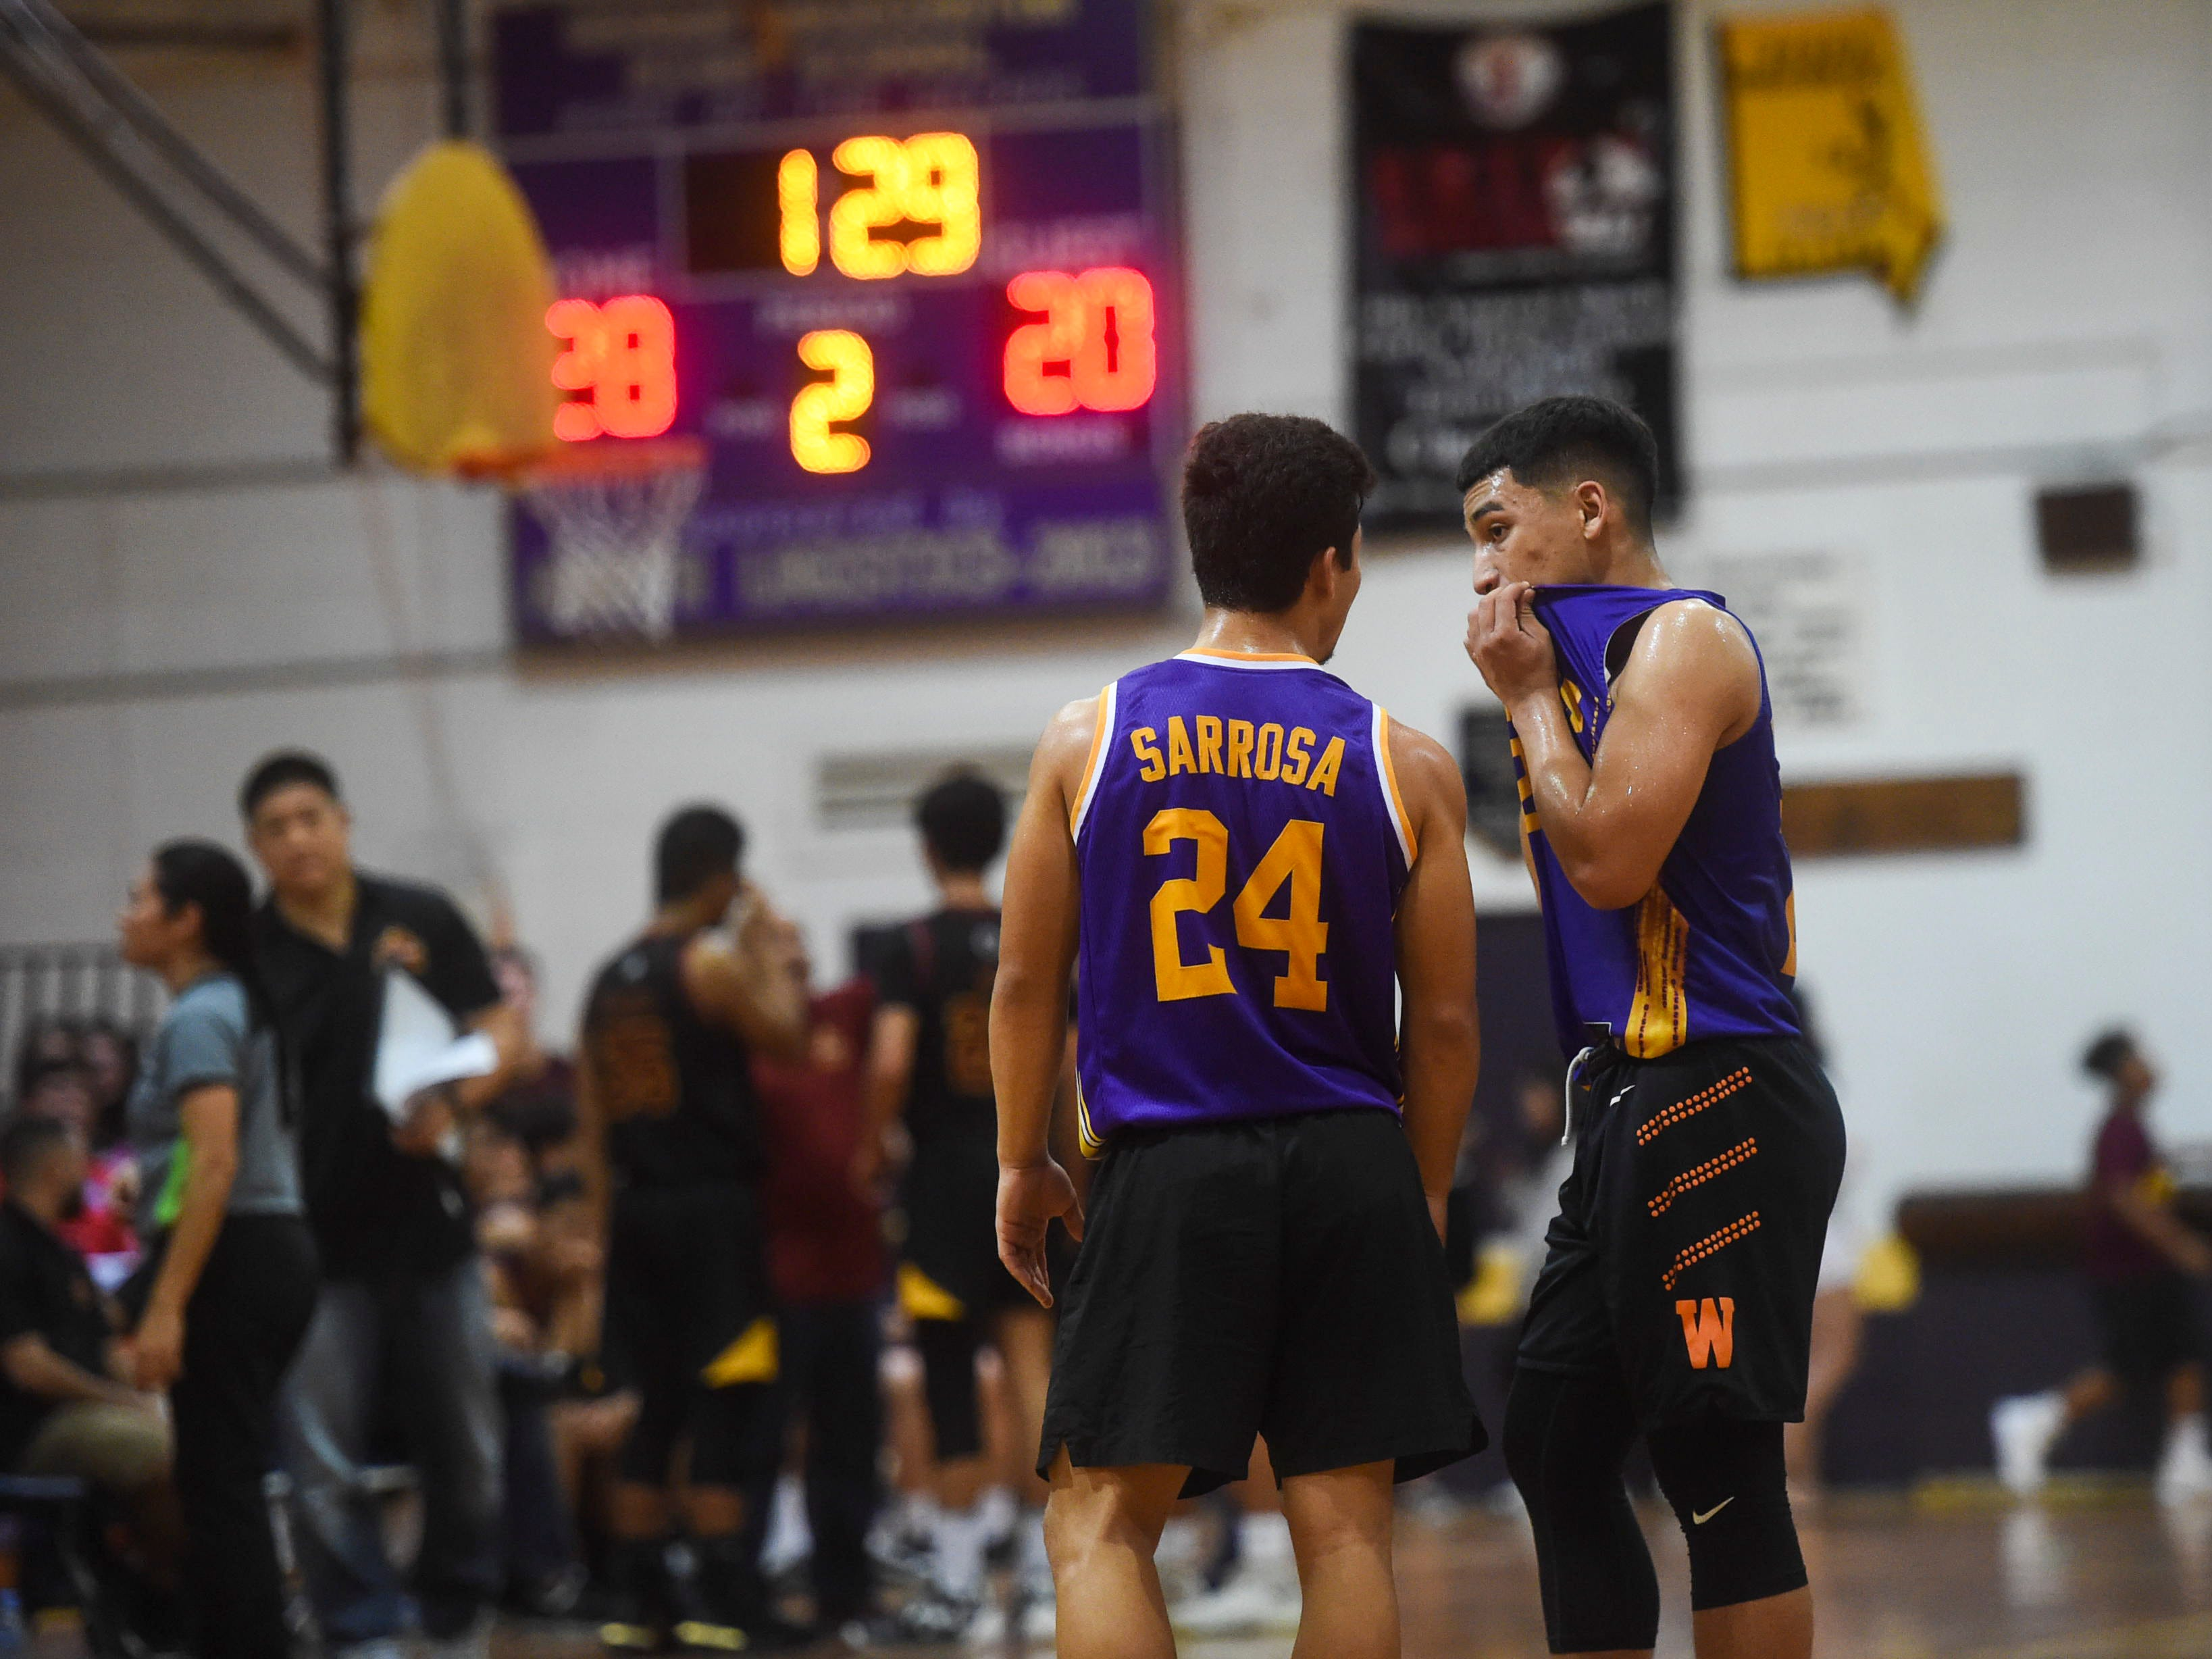 George Washington Geckos teammates talk during a break in their Independent Interscholastic Athletic Association of Guam Boys' Basketball game against the Father Duenas Friars at the GW High School gym, Jan. 19, 2019. The Friars came through with a 52-69 comeback victory over the Geckos after trailing in the first half.